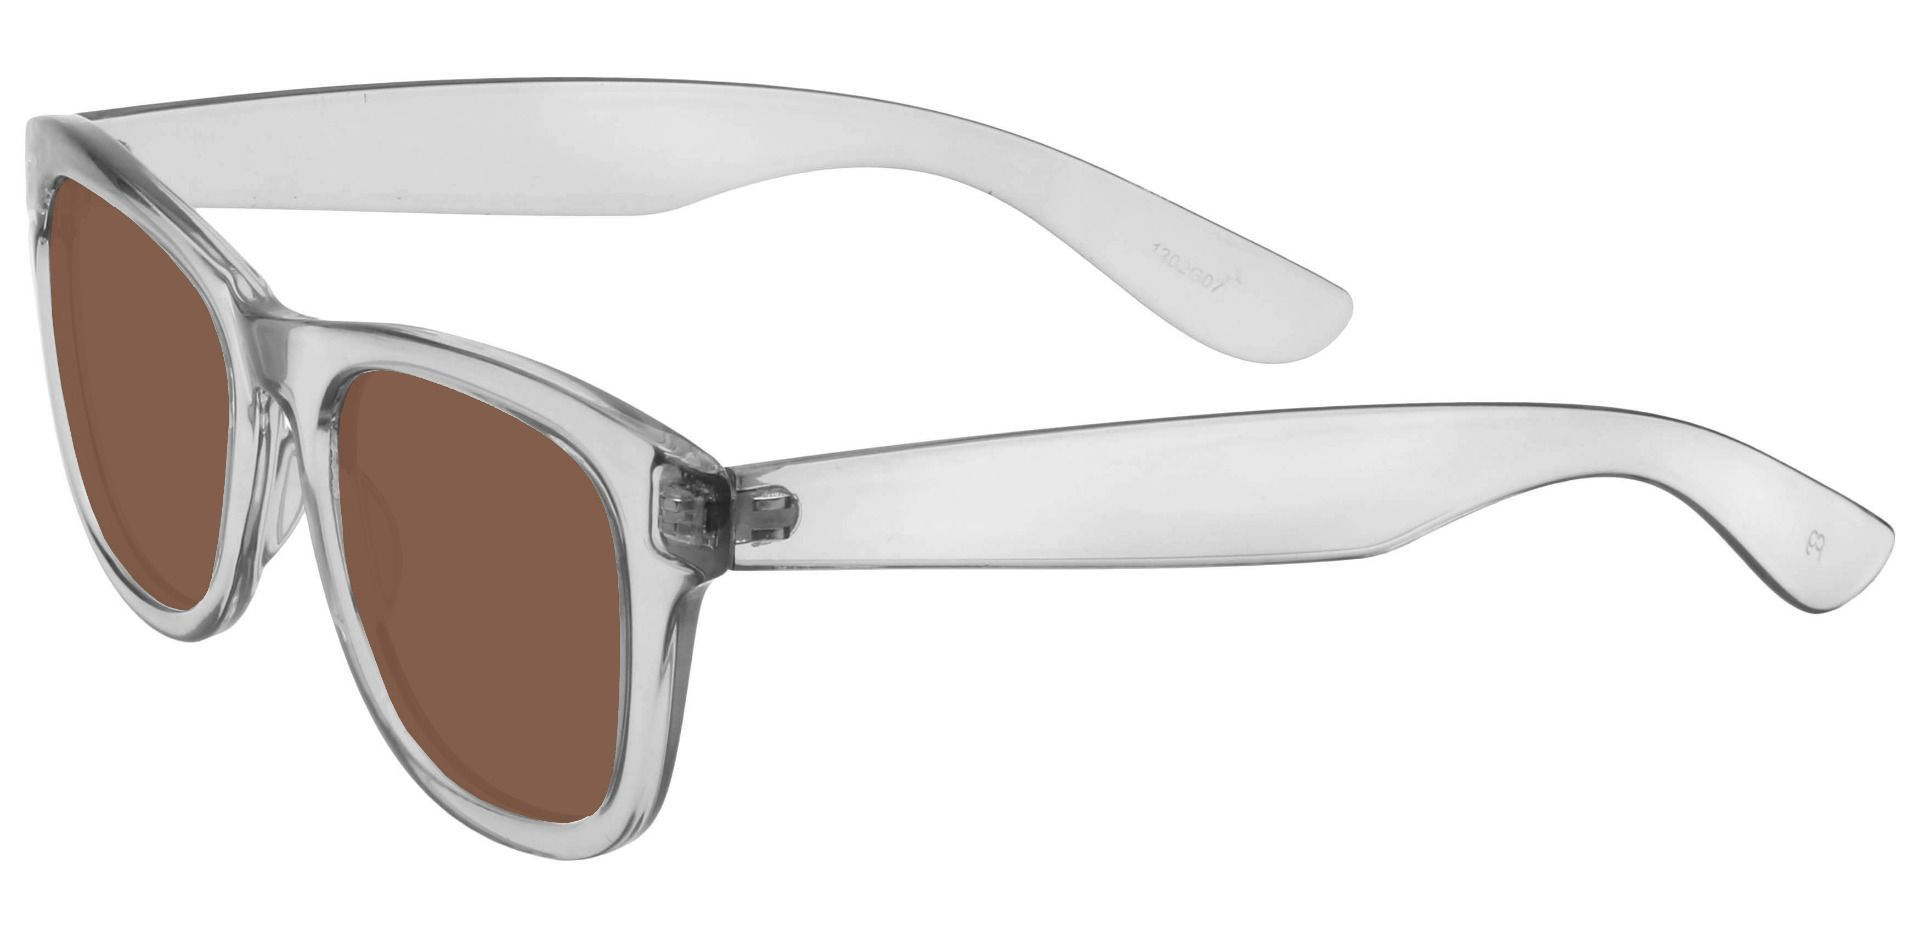 Tyre Square Prescription Sunglasses - Clear Frame With Brown Lenses